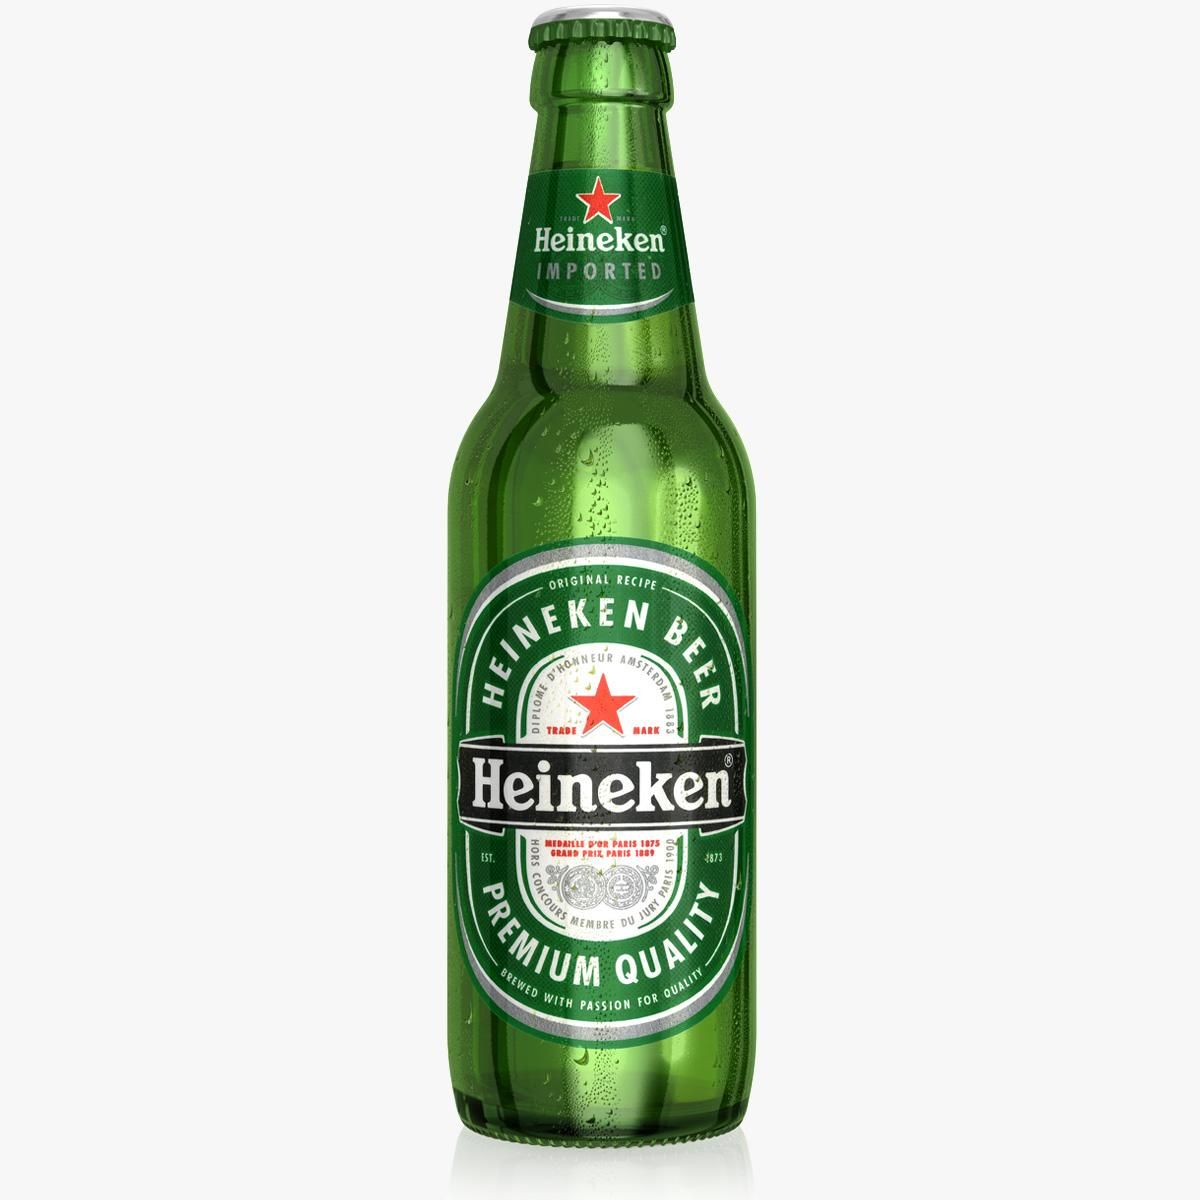 Heineken Bottle 3d Model Ad Heineken Bottle Model Heineken